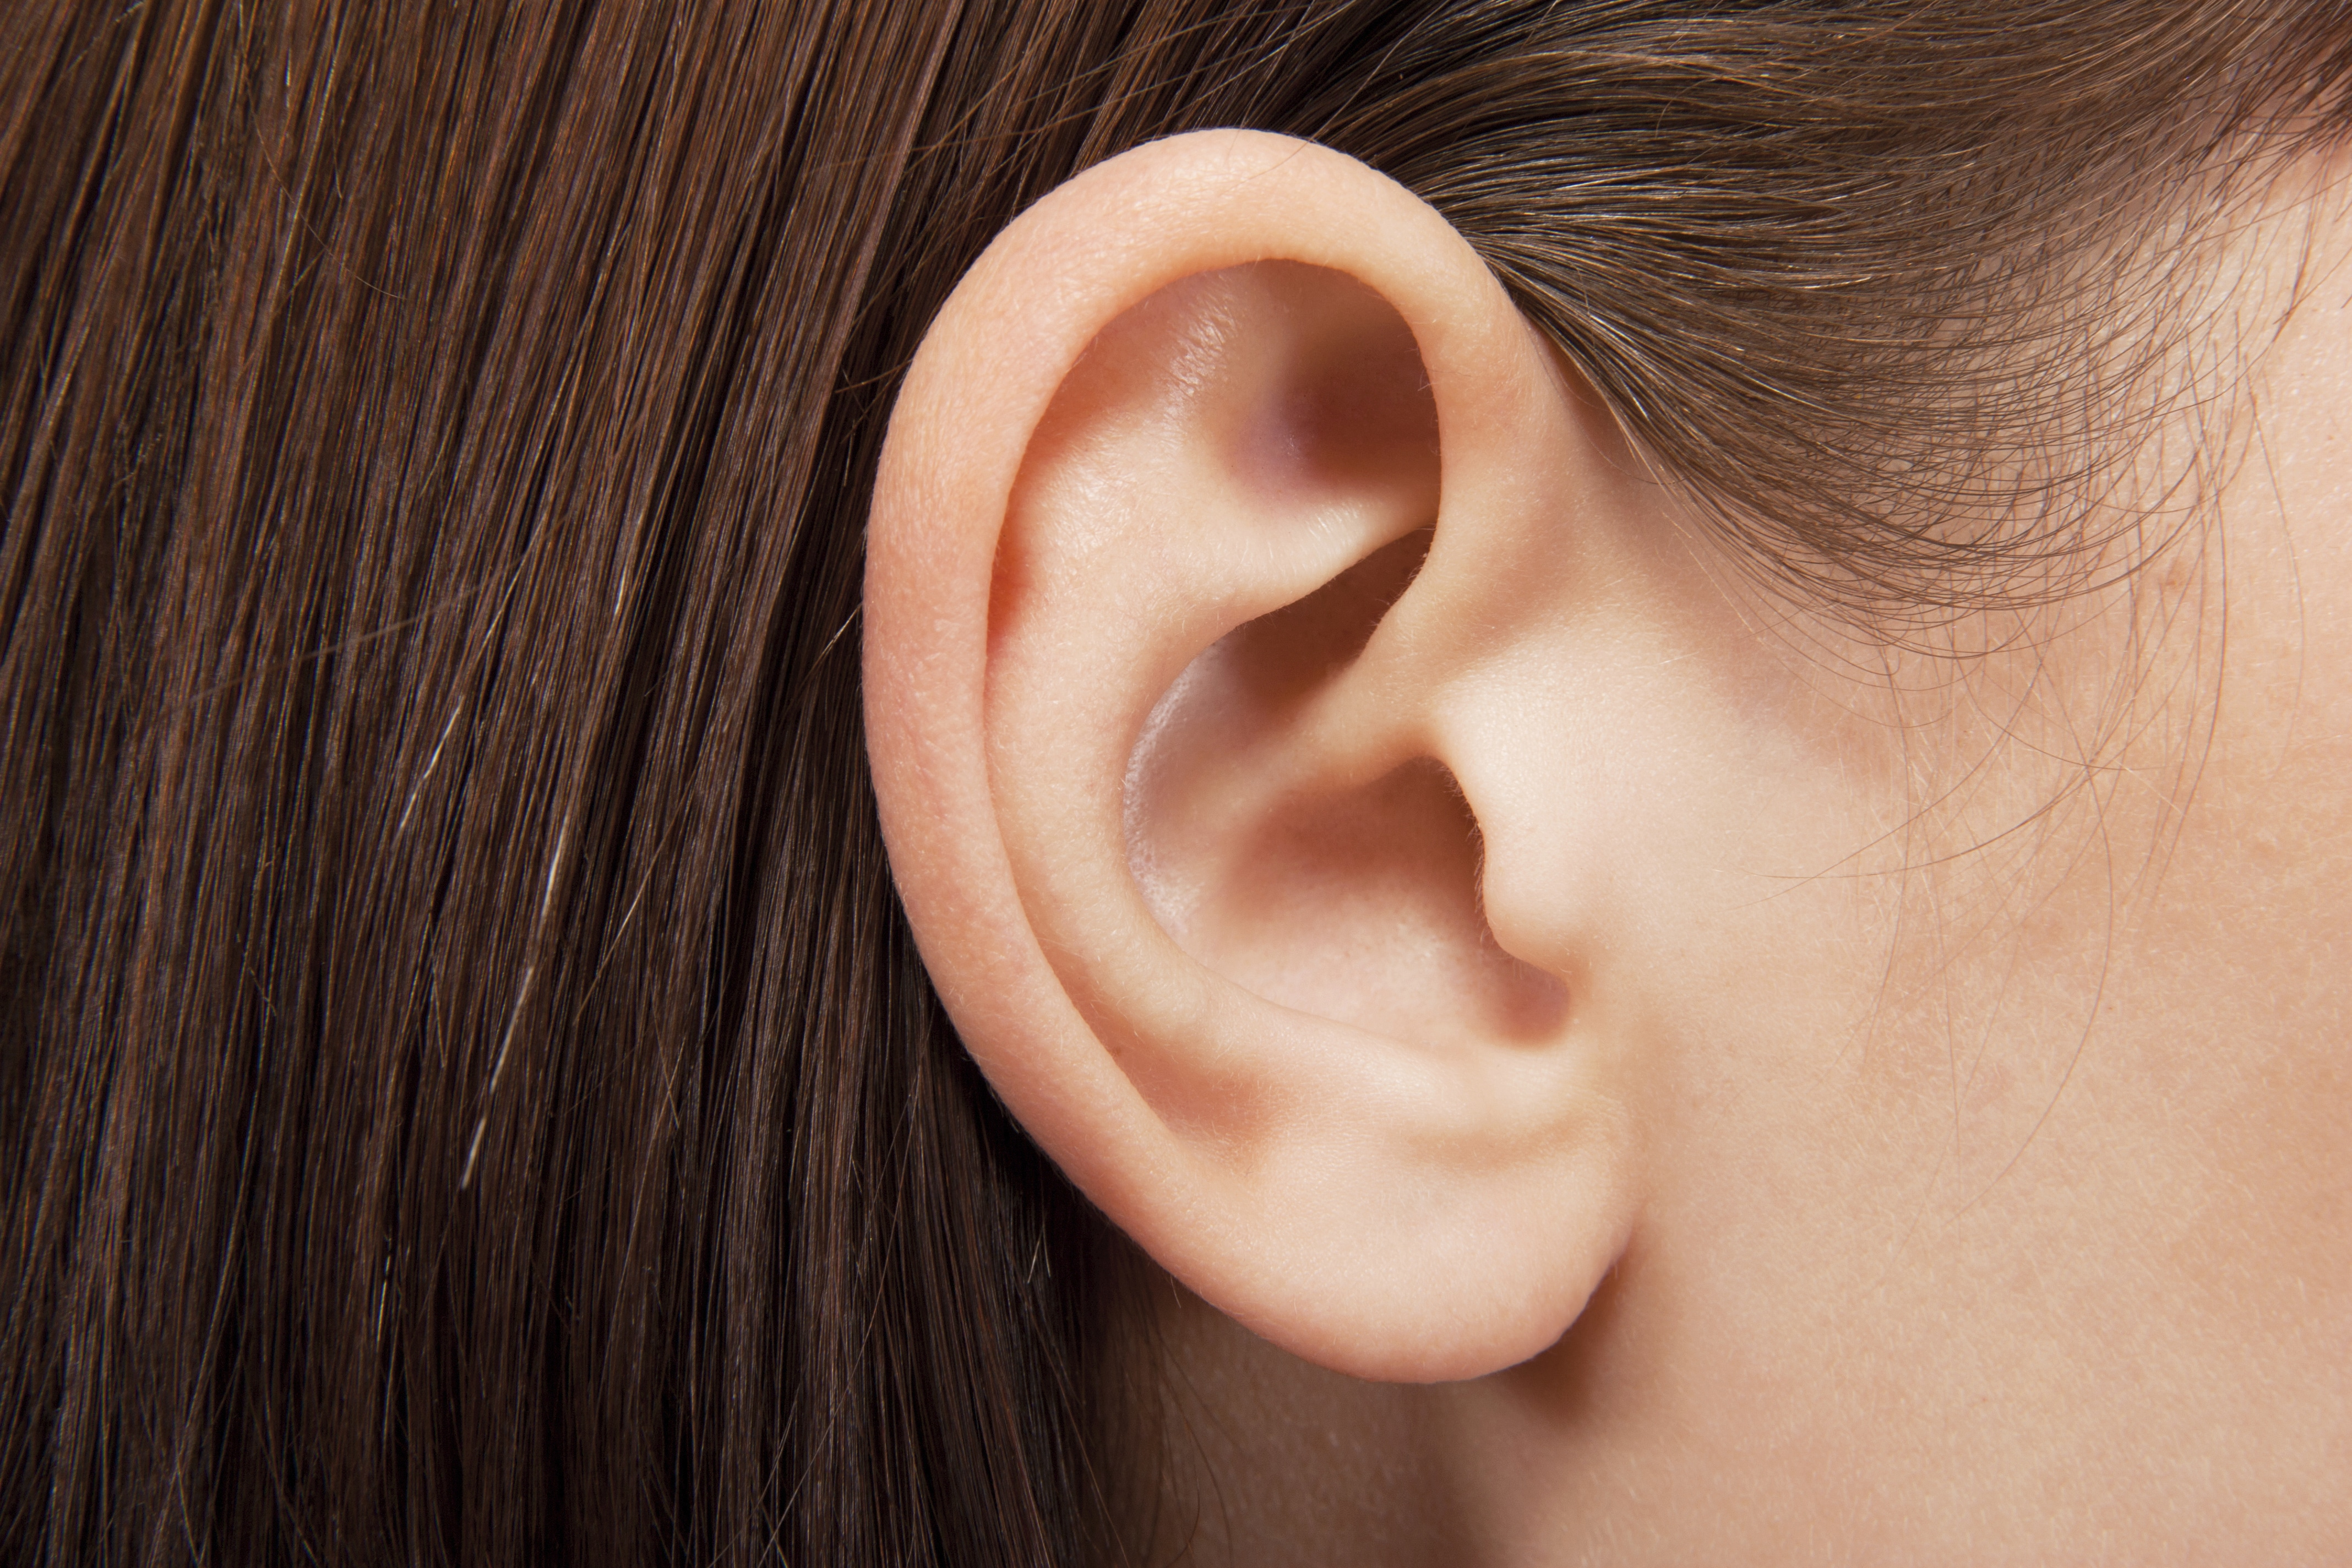 Ear of a Woman with dark hair